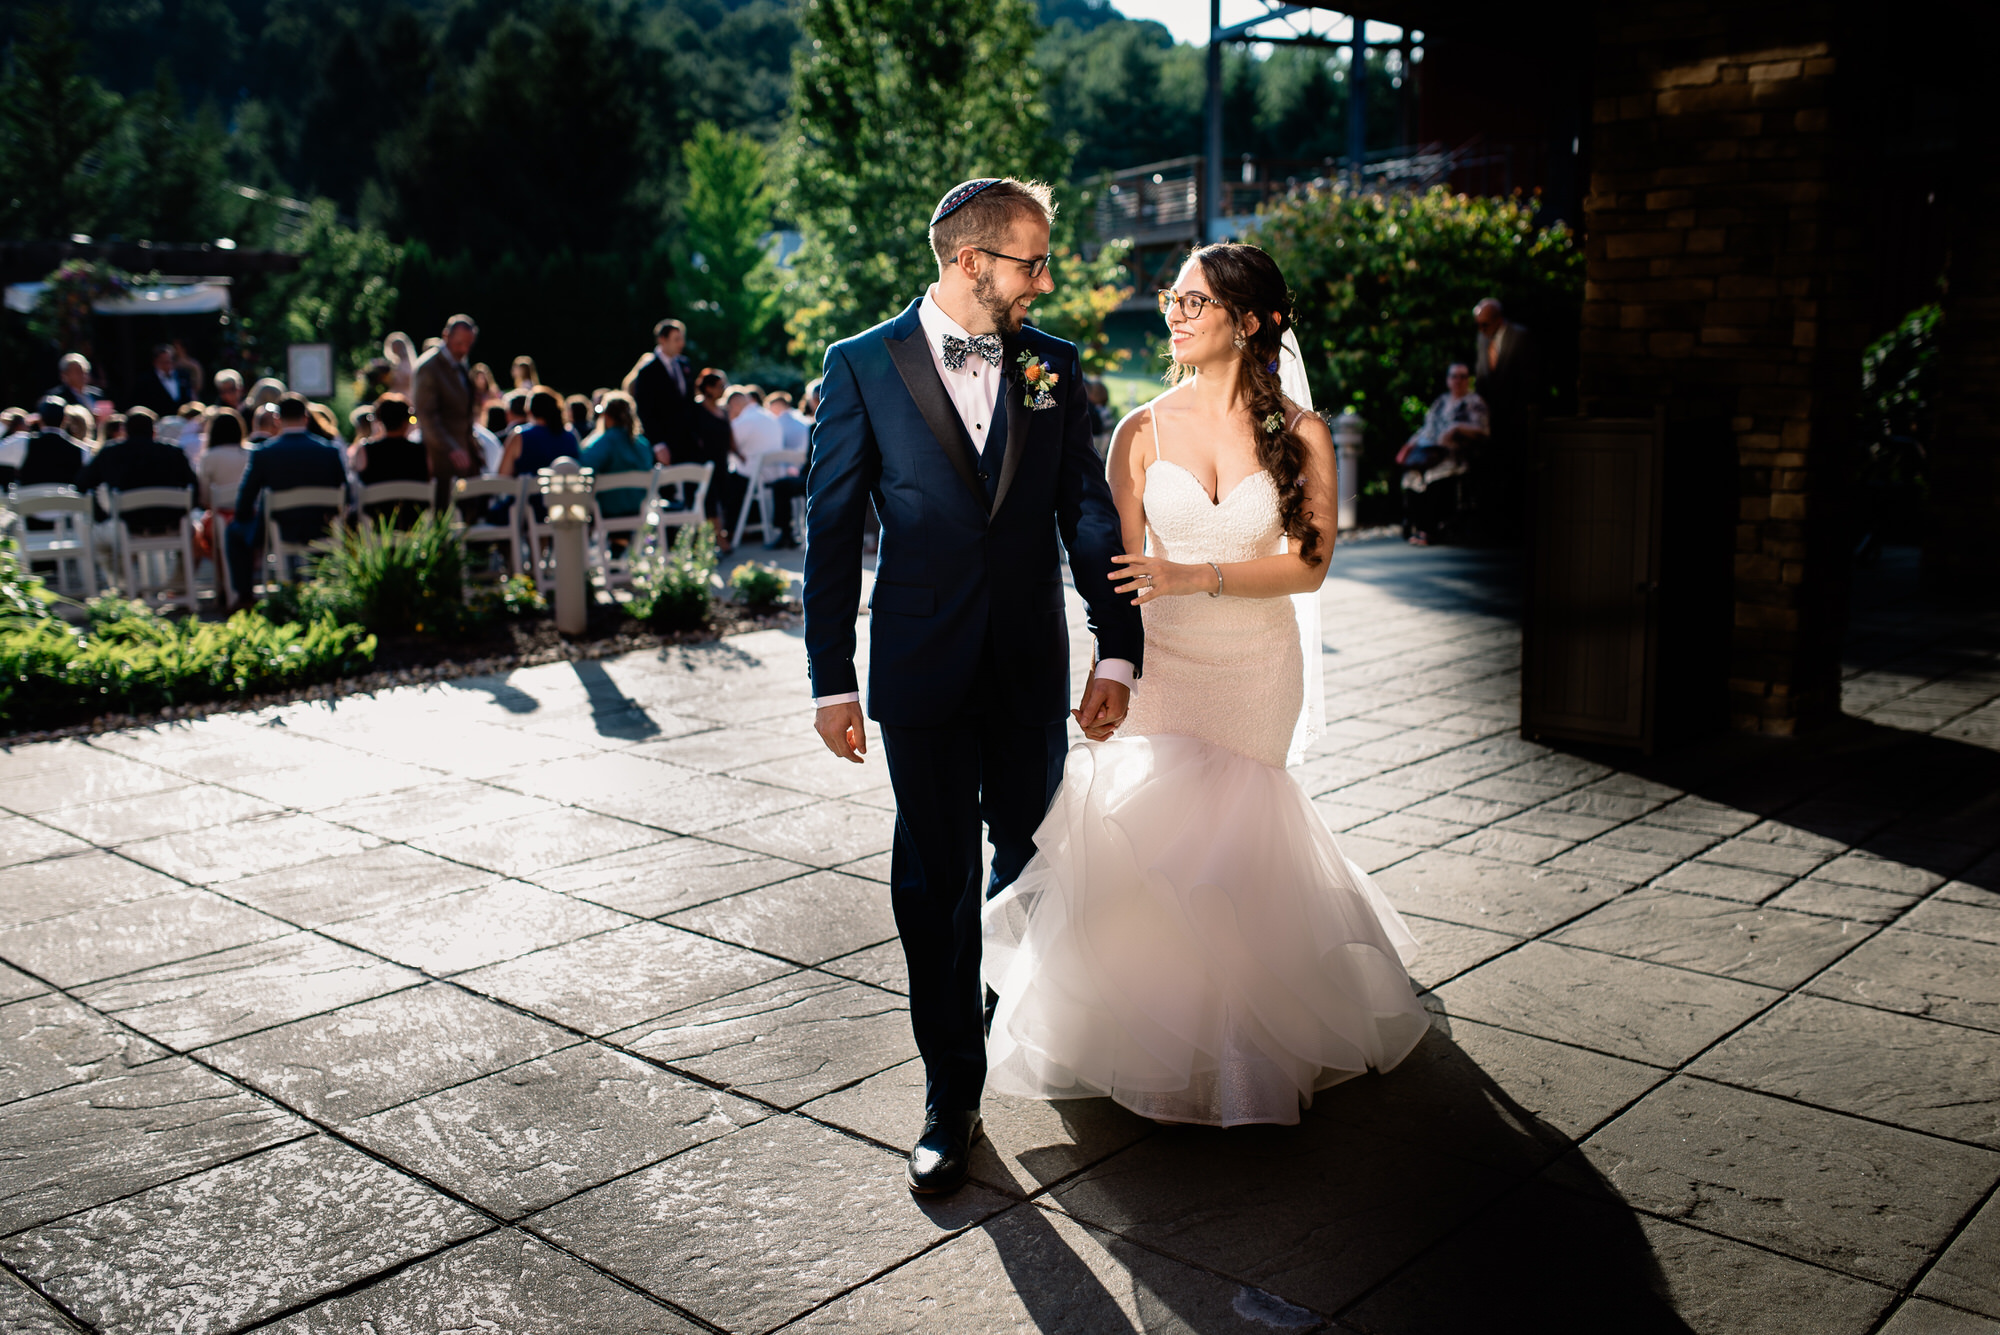 Bear_Creek_Mountain_Wedding_062.jpg